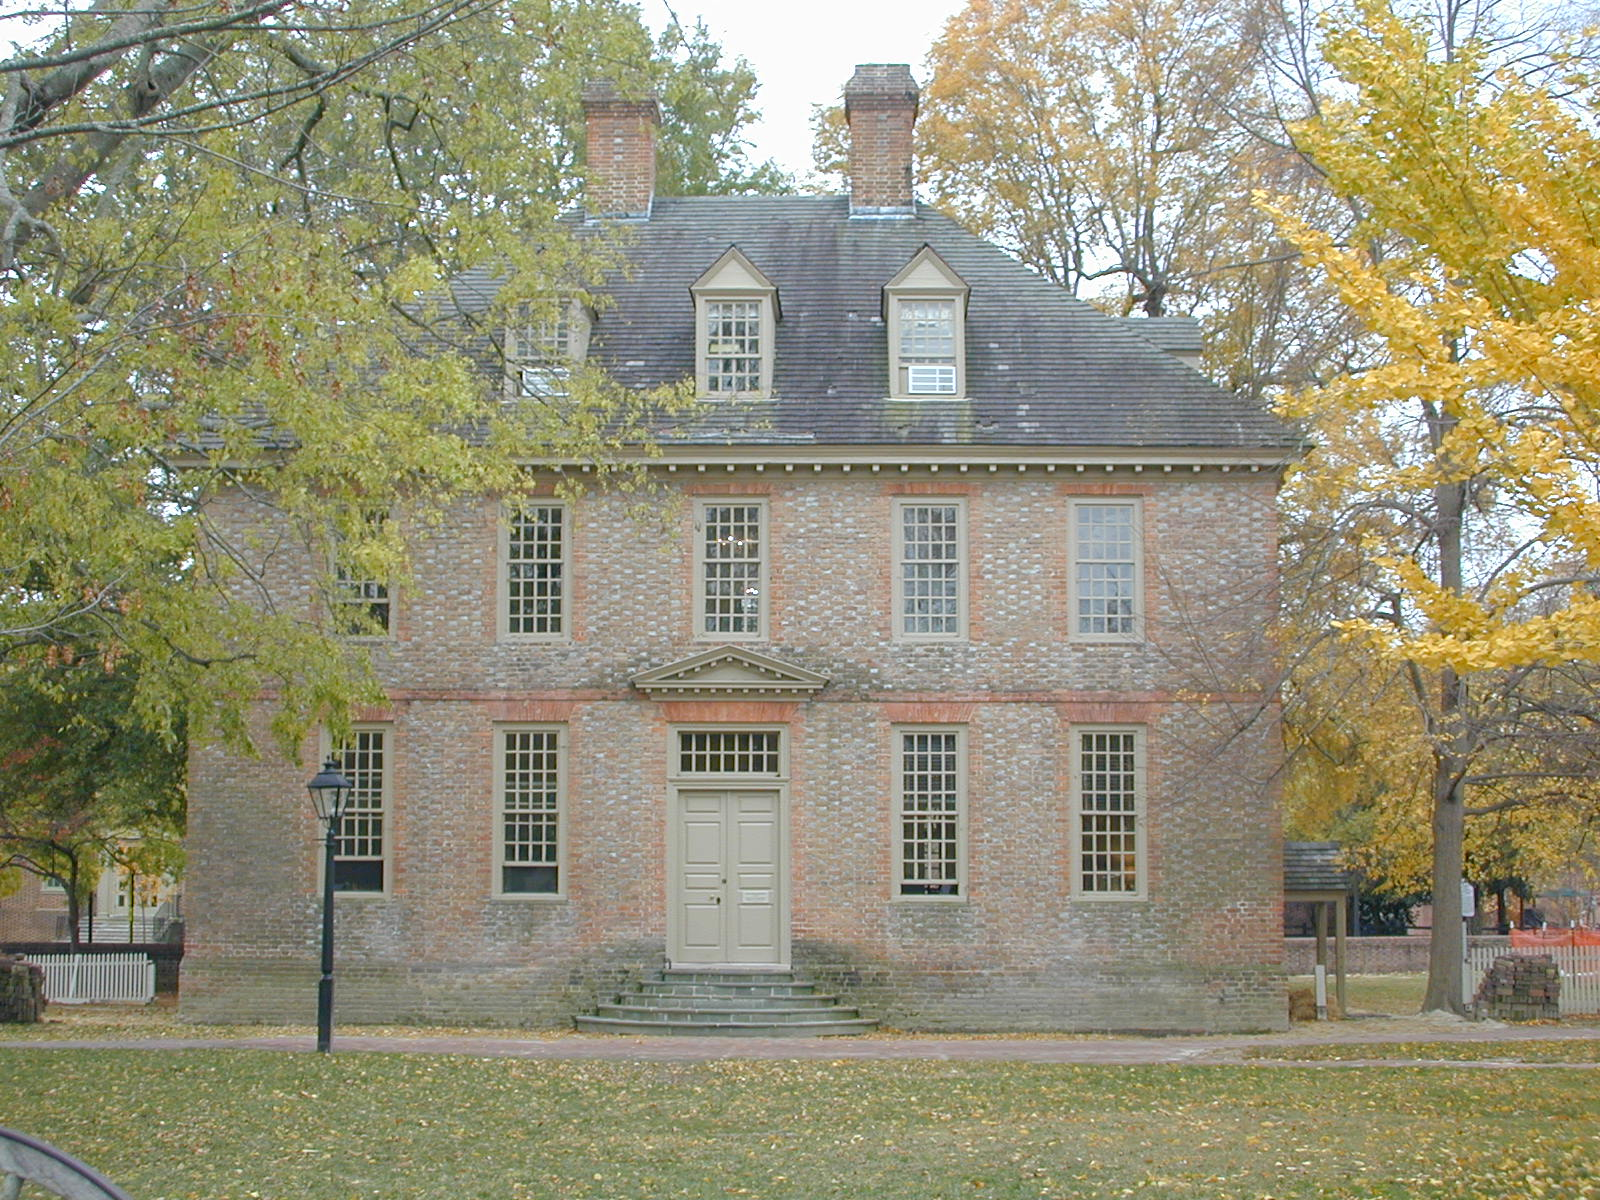 Built in 1723, the Brafferton is the second oldest building at the College of William & Mary. Image obtained from waymarking.com.